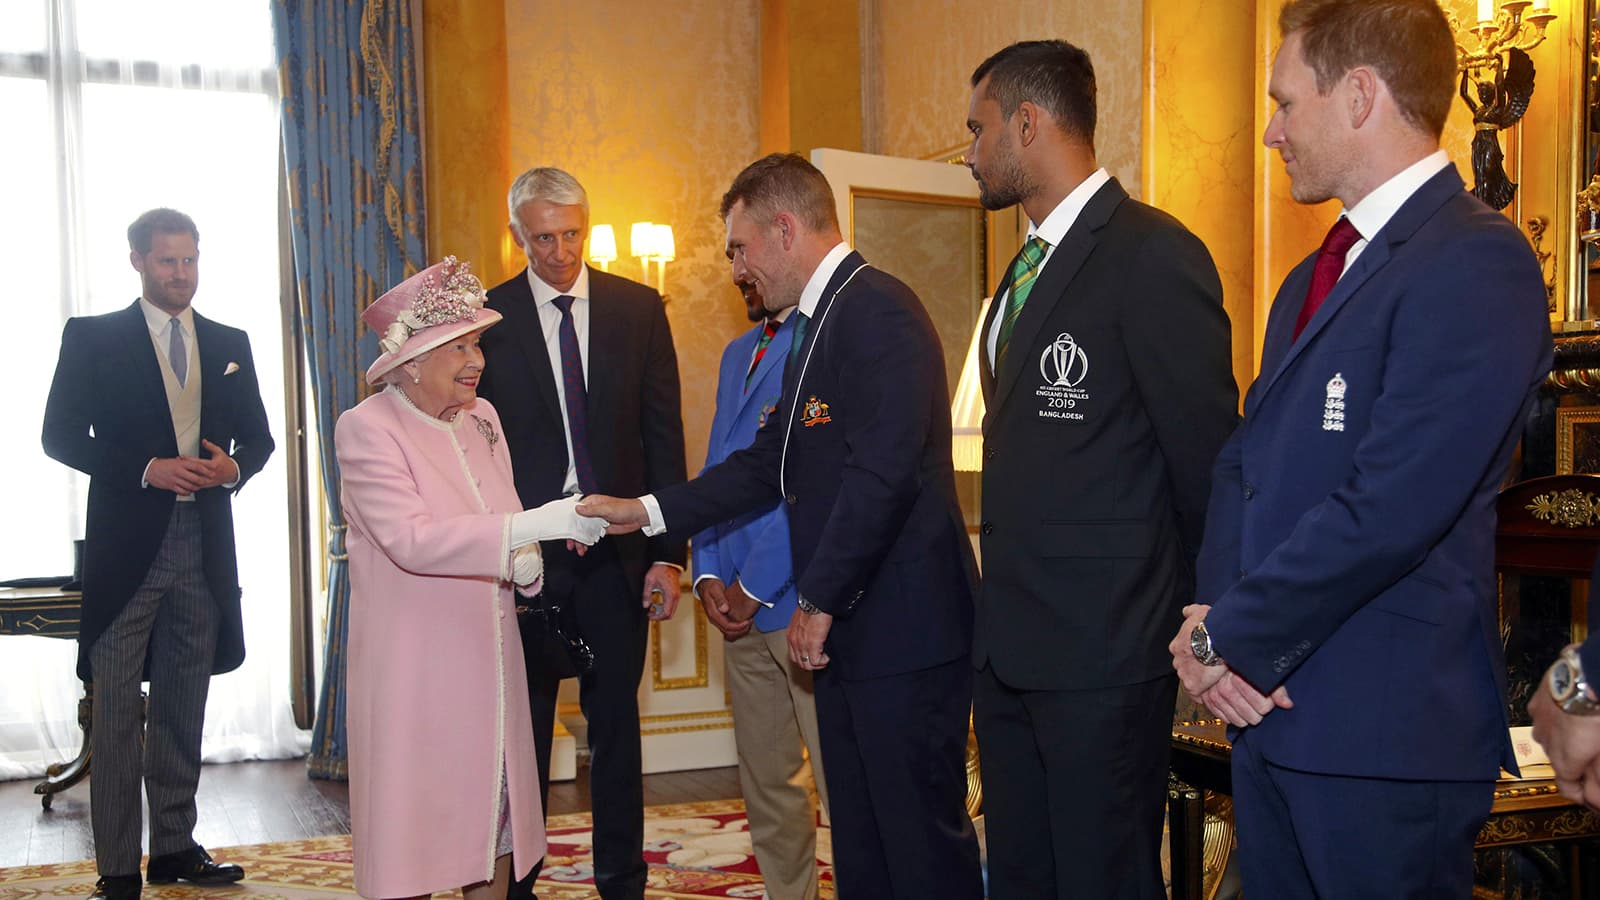 Britain's Queen Elizabeth meets, from left, Afghanistan cricket captain Gulbadin Naib, Australia captain Aaron Finch, Bangladesh captain Masrafe Bin Mortaza and England captain Eoin Morgan during a Royal Garden Party at Buckingham Palace in London on May 29. — AP